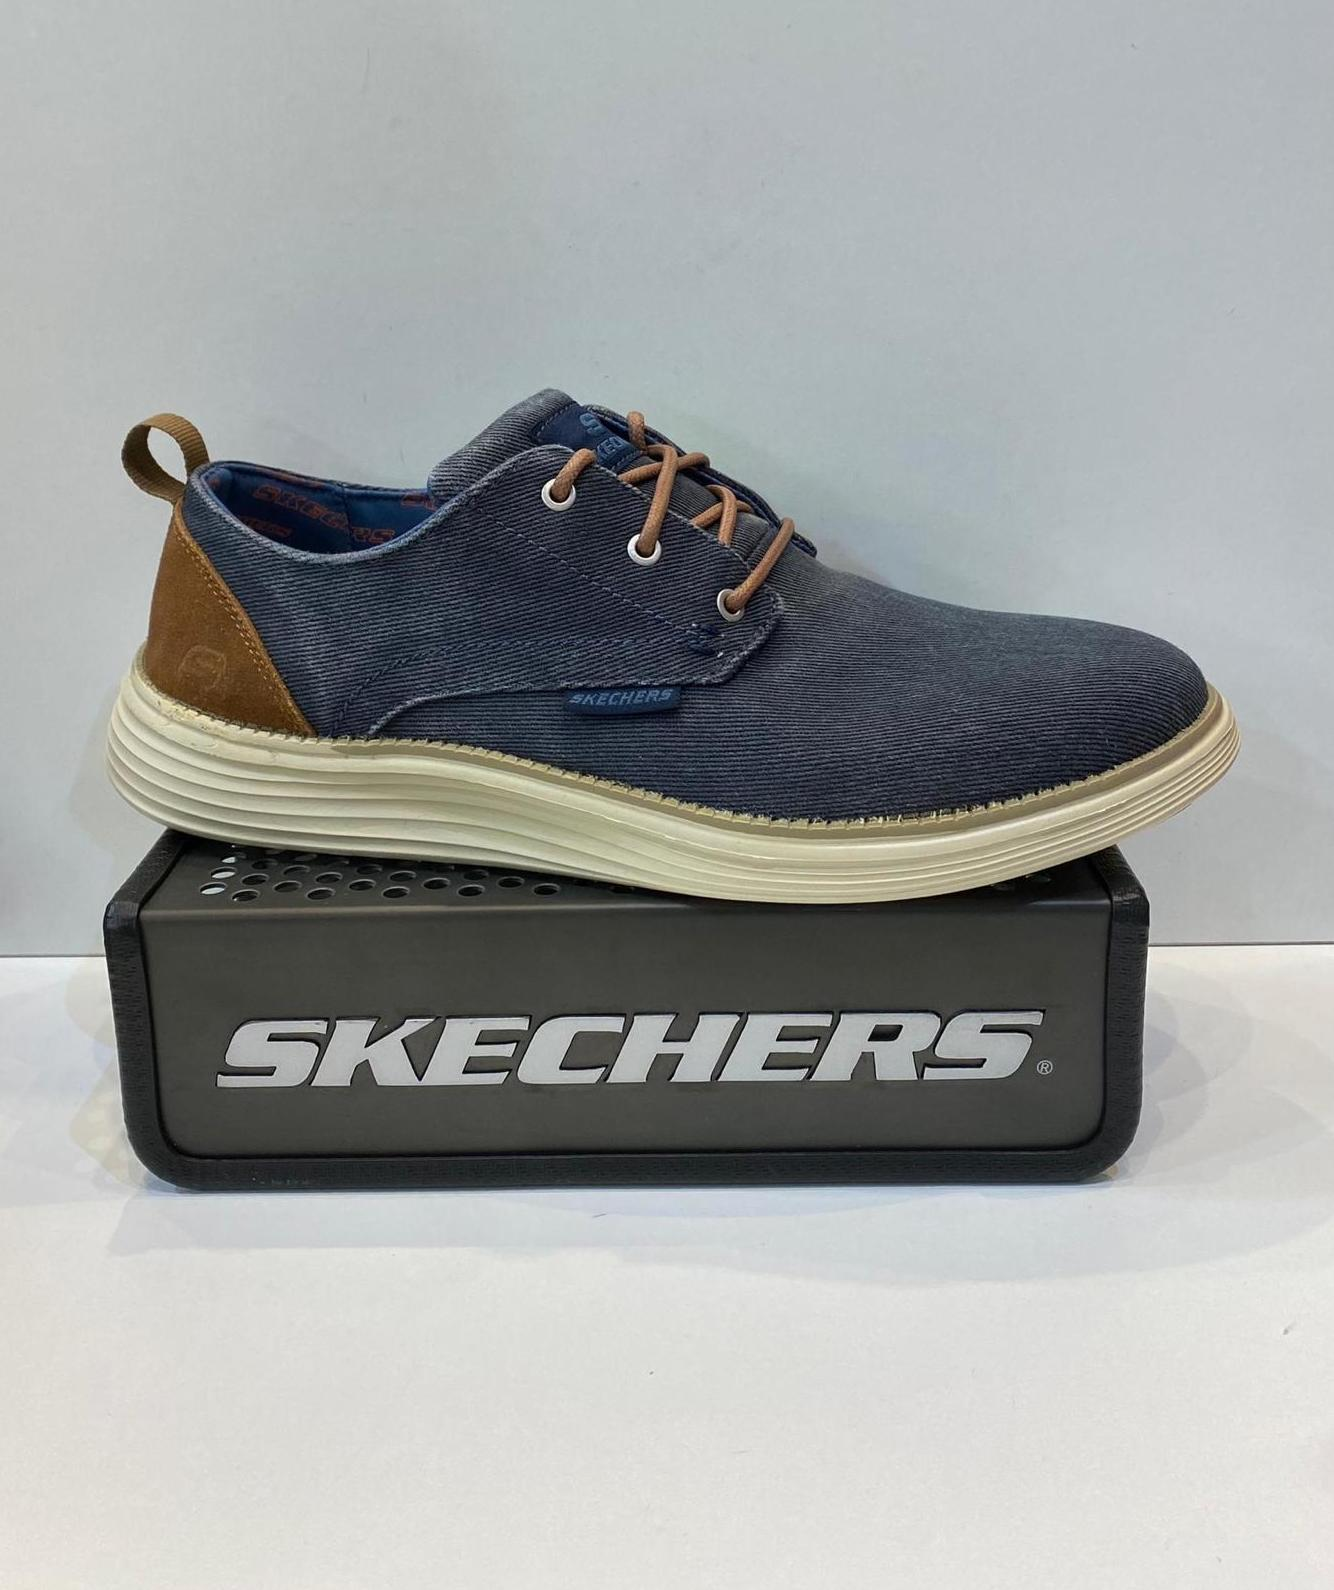 Blucher d'home, de la marca Skechers, plantilla Classic Fit    Air-Cooled ¡Memory Foam, sola de resalite 69.95€